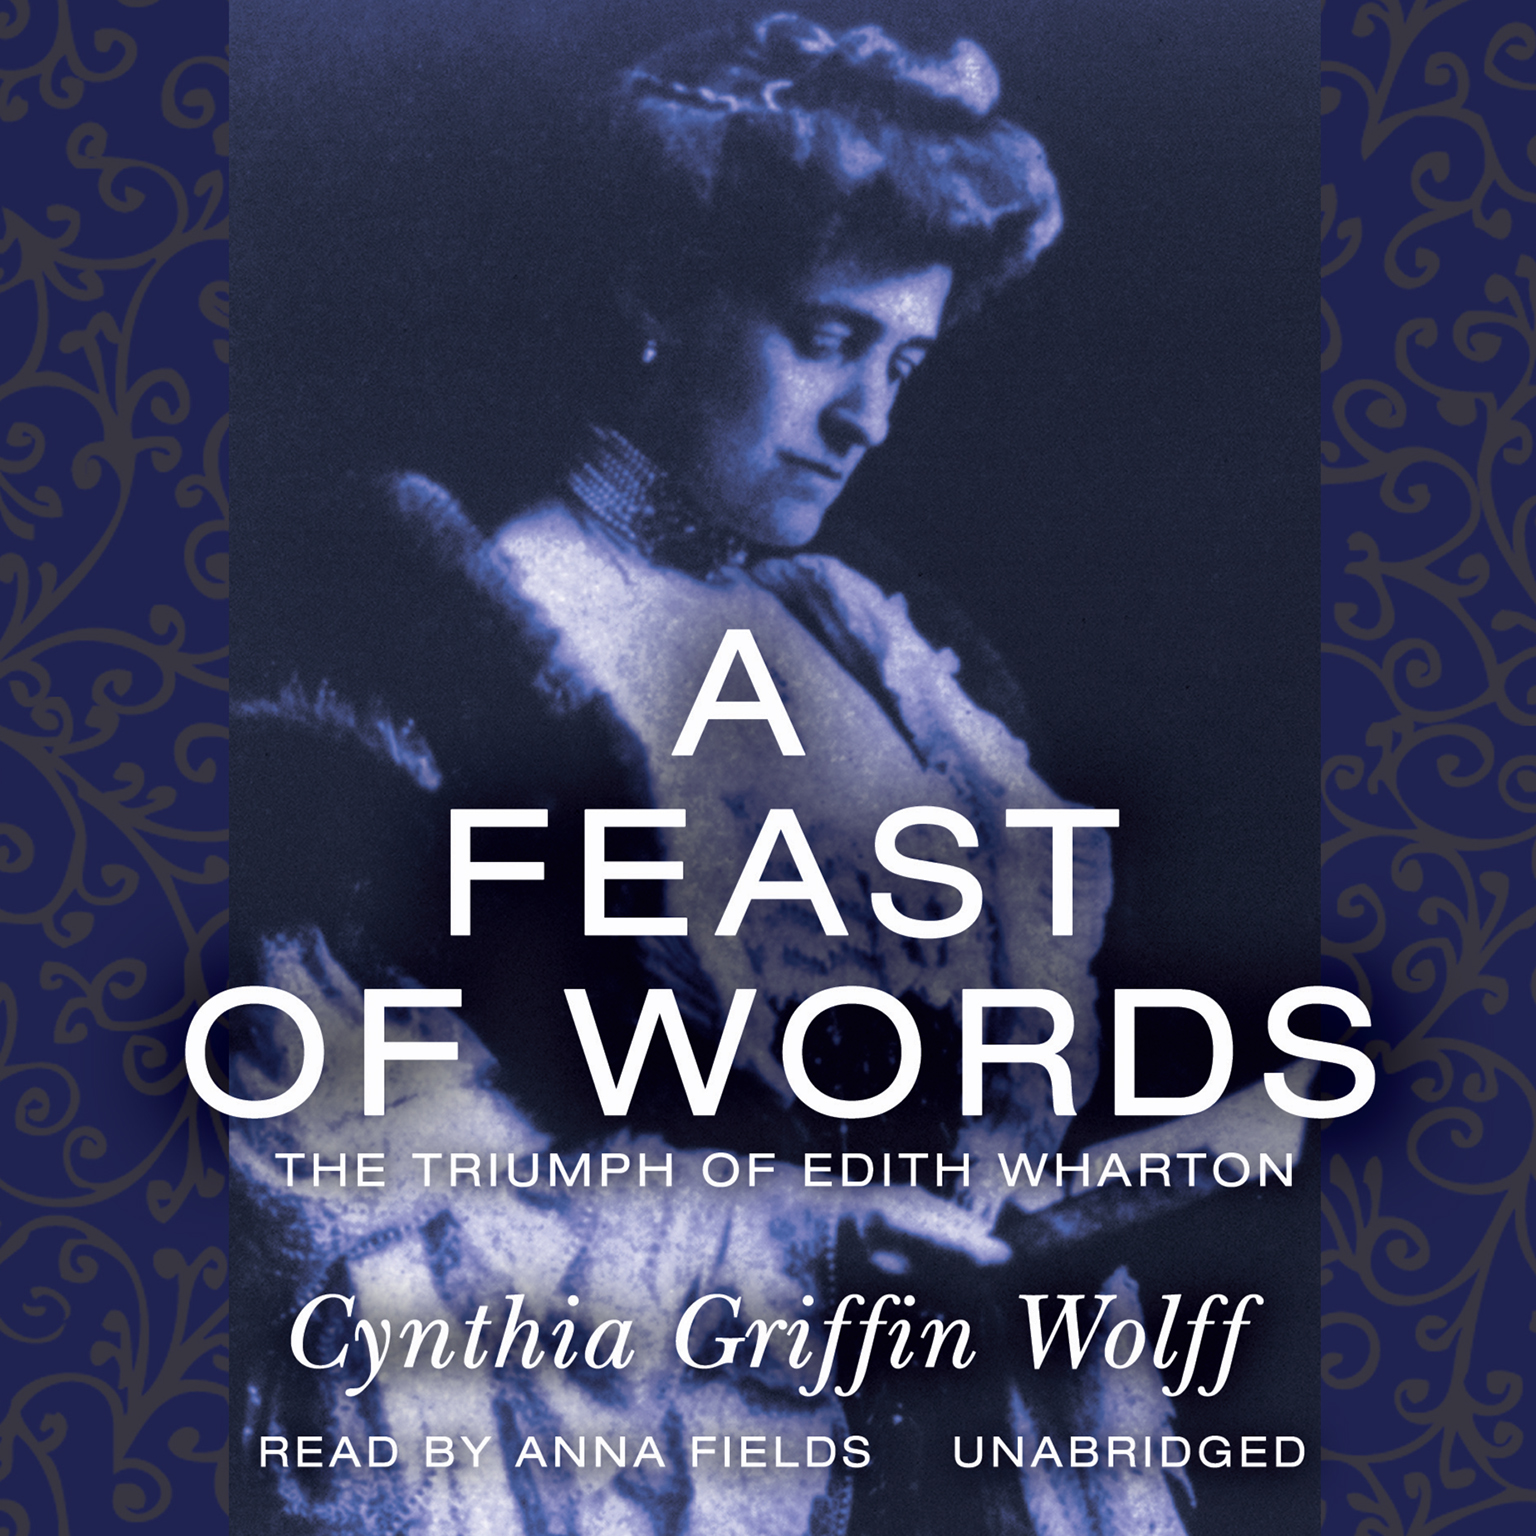 Printable A Feast of Words: The Triumph of Edith Wharton Audiobook Cover Art